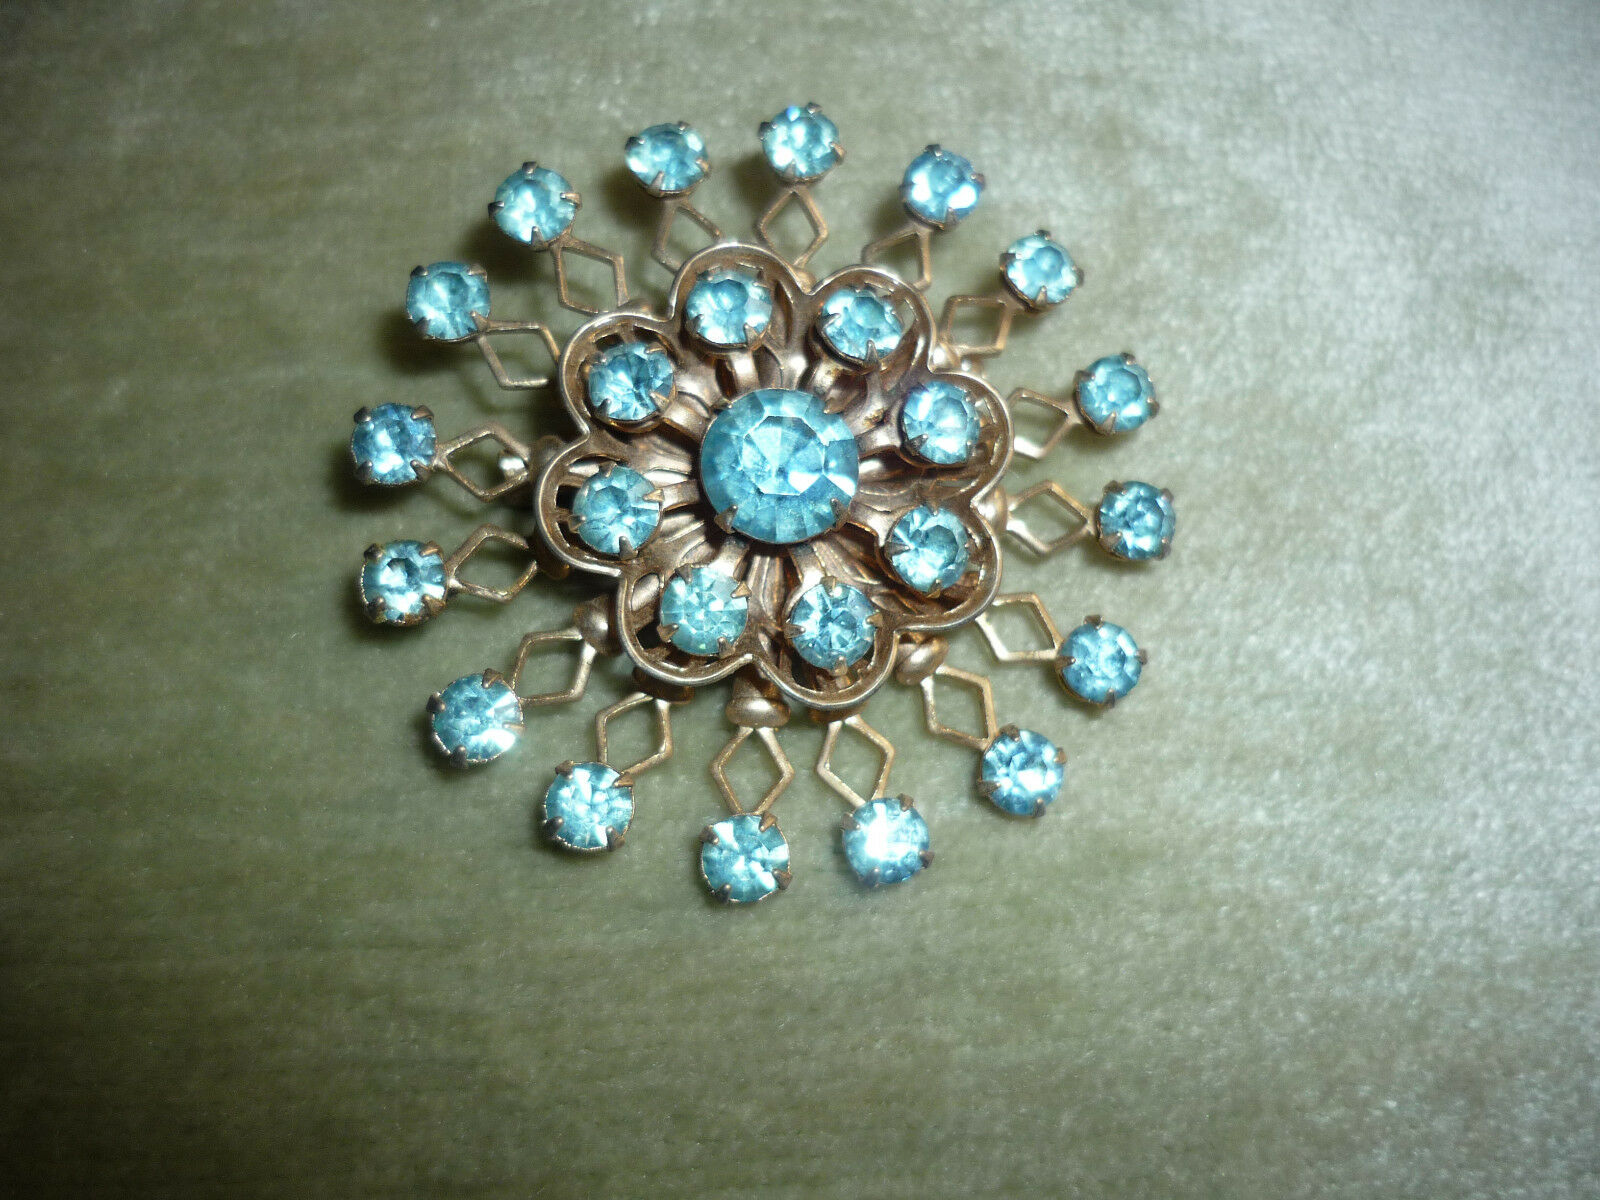 VINTAGE BRASS PIN WITH AQUAMARINE colorD STONES  GREAT CLARITY